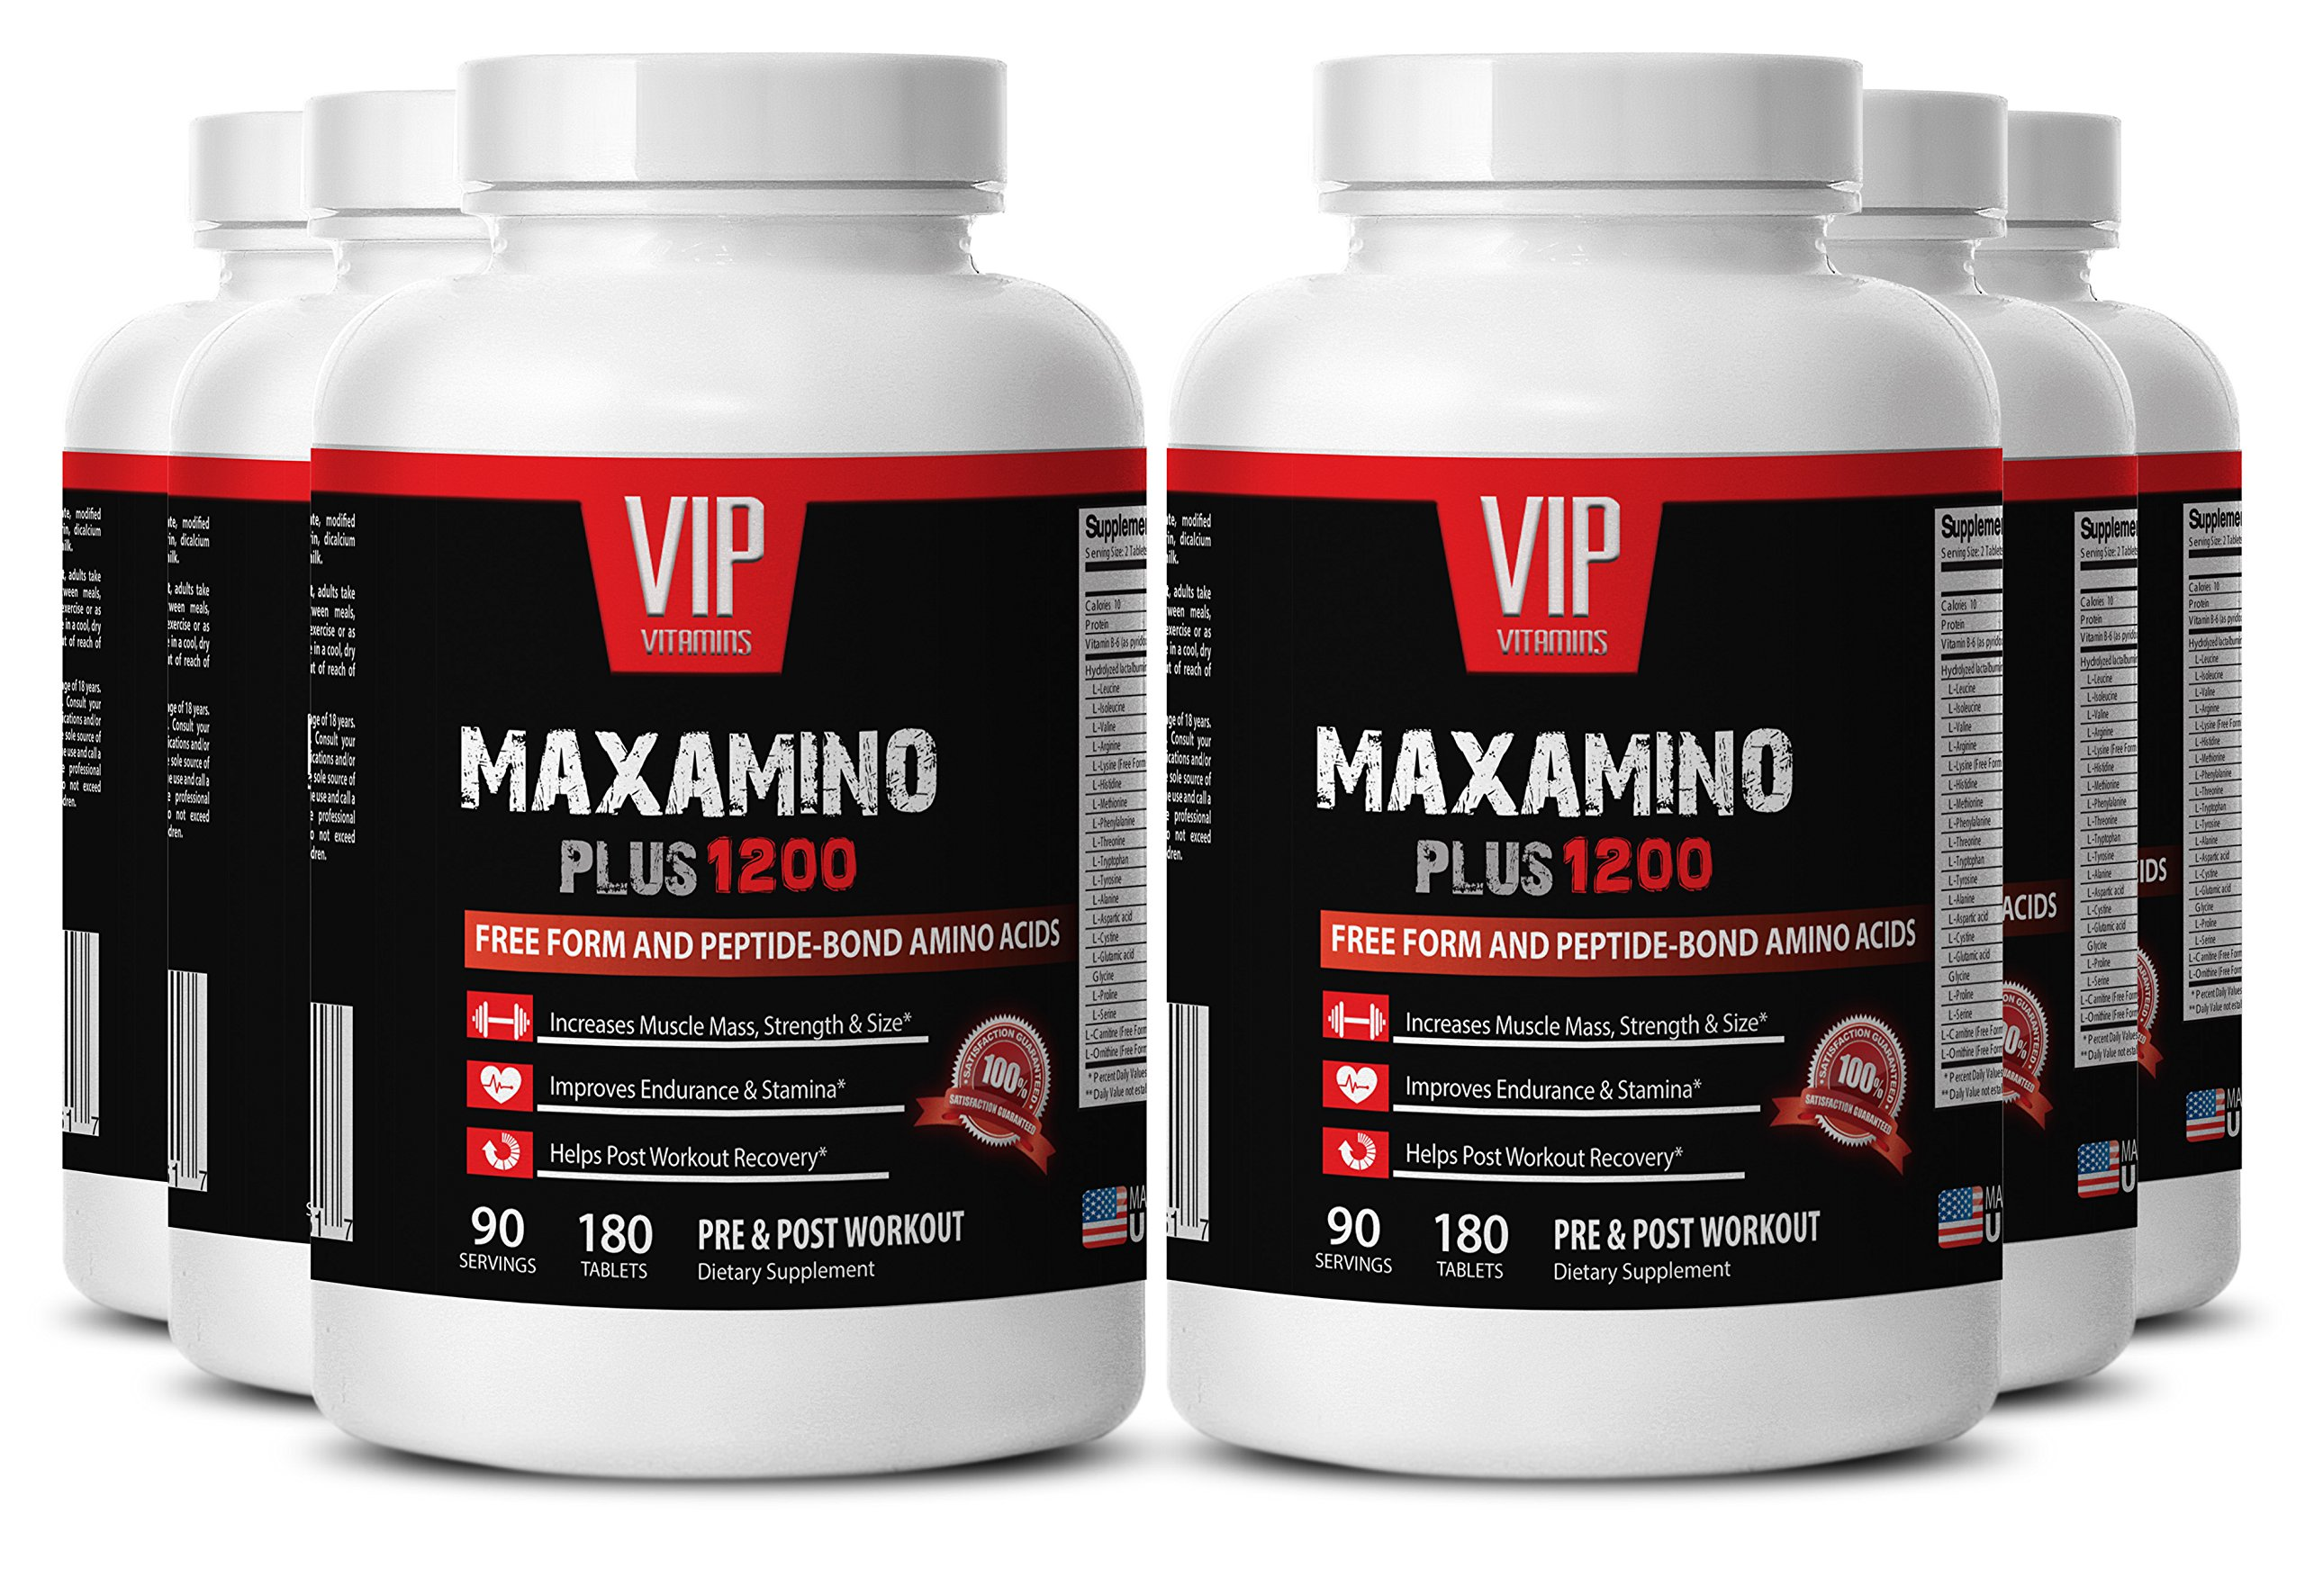 Pre workout for men weight loss - MAXAMINO PLUS 1200 - Bodybuilding supplements for men muscle grow - 6 Bottles 1080 Tablets by VIP VITAMINS